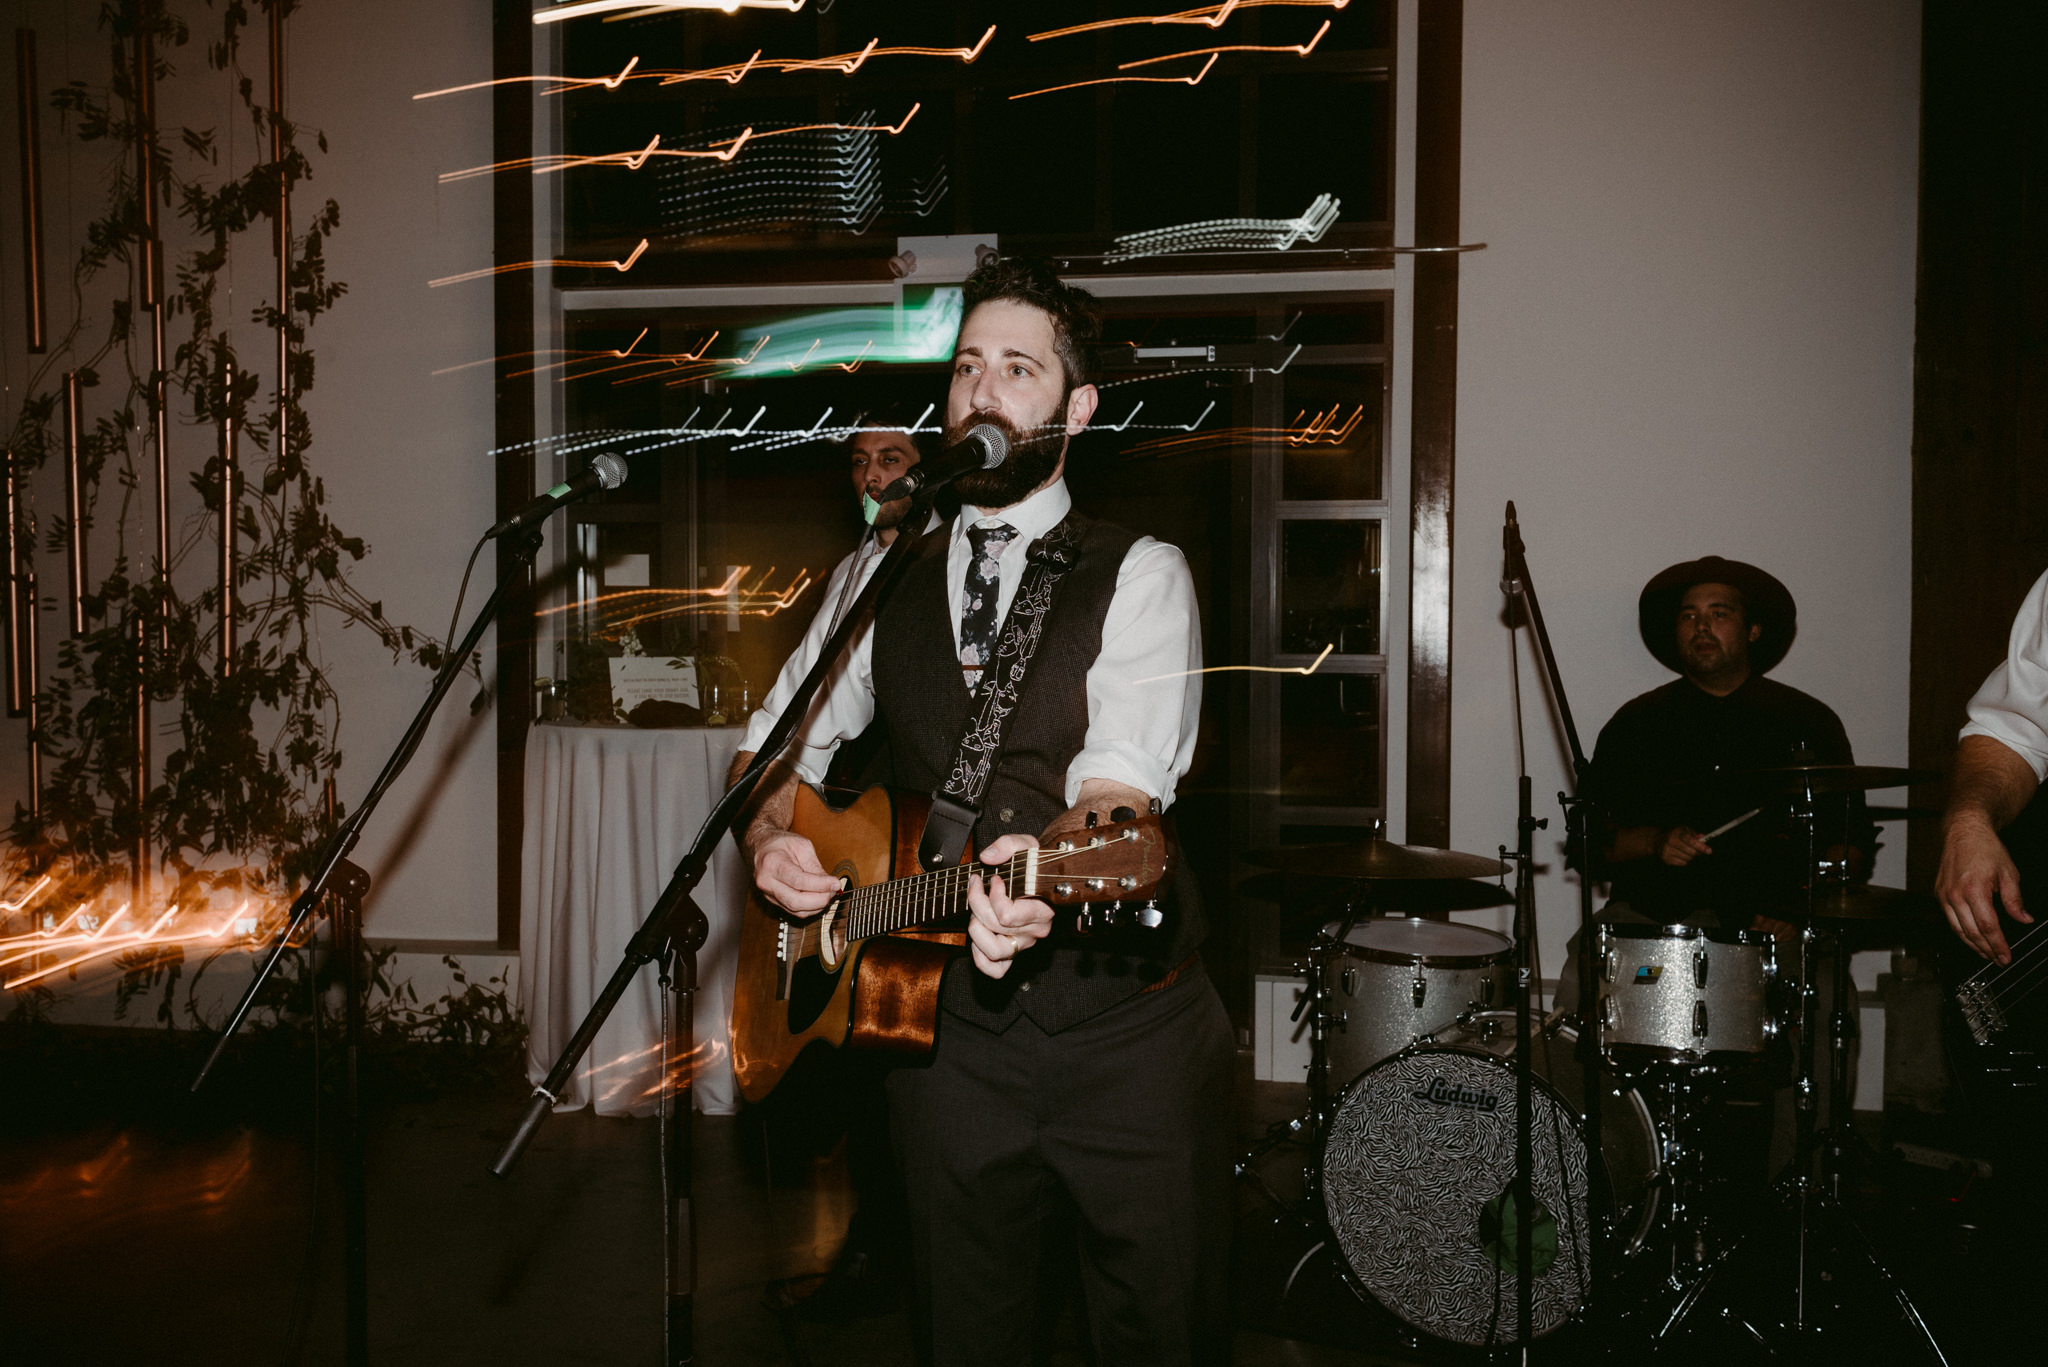 groom playing guitar and singing during wedding reception